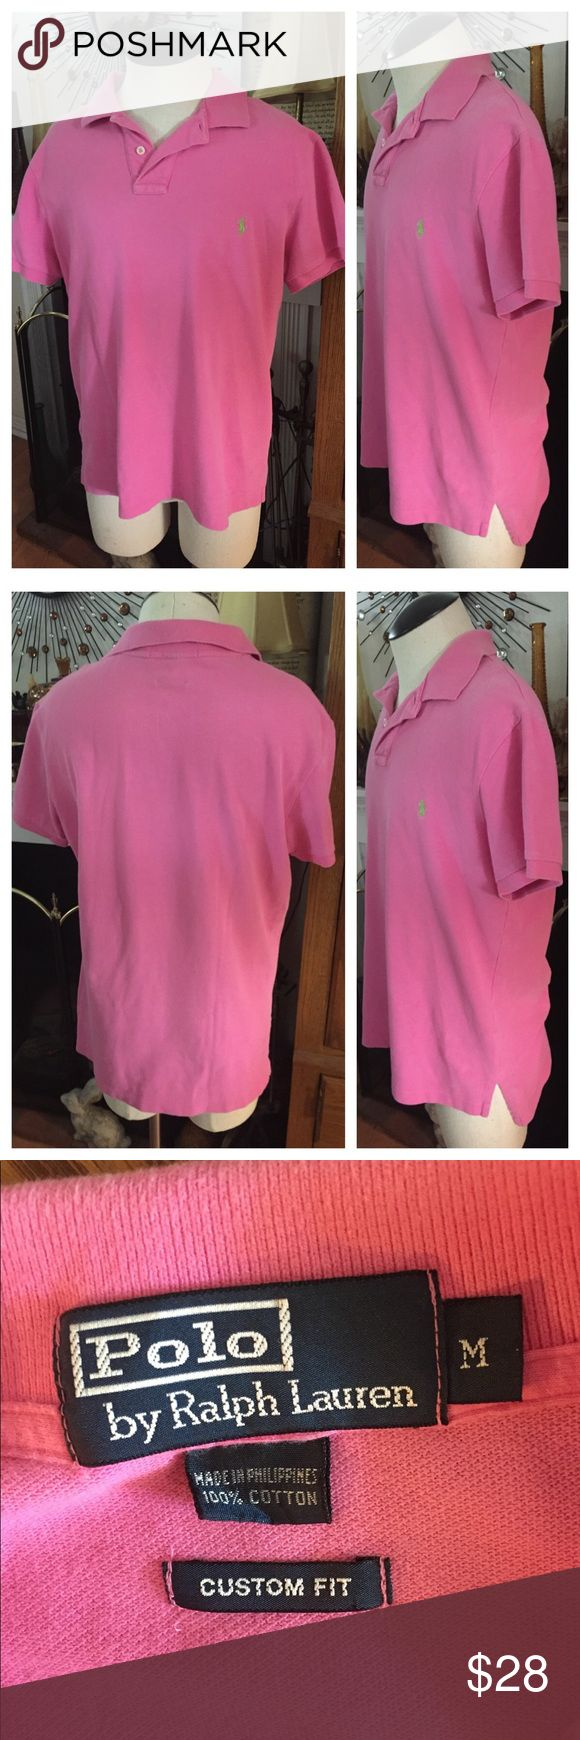 POLO By RALPH LAUREN Polo Shirt Bubblegum Pink POLO By RALPH LAUREN ~ Custom Fit Shirt ~ Size M. 100% Cotton. In excellent preowned condition. Smoke-free home. Bundle with other Polo shirts and save ❣️ Polo by Ralph Lauren Shirts Polos